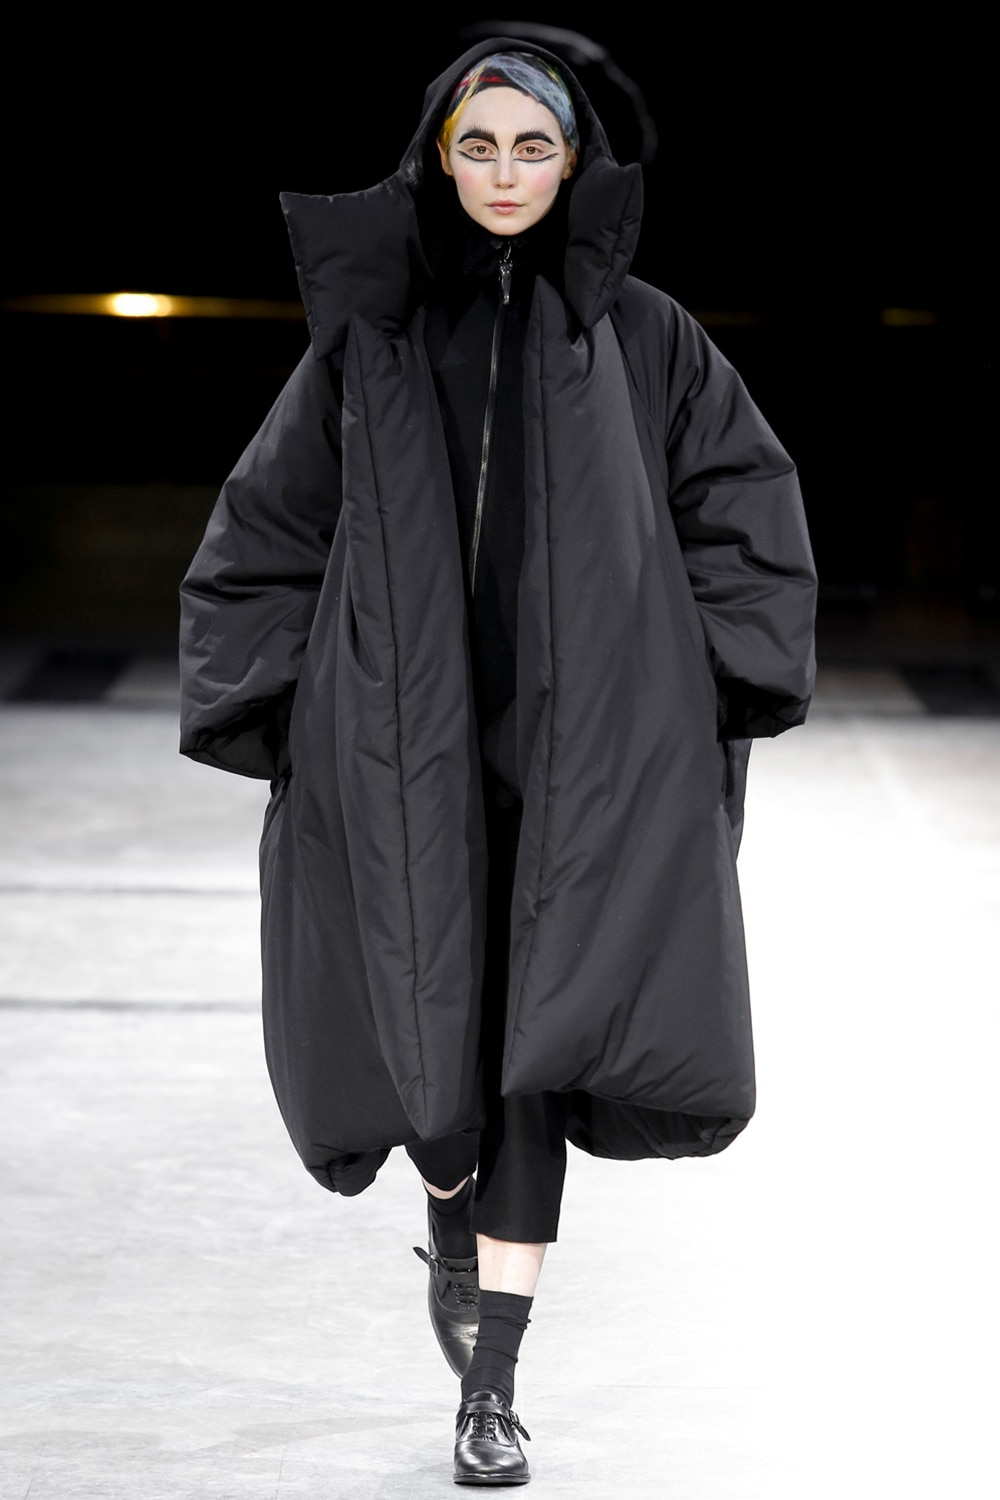 AUTUMN / WINTER 2014-15